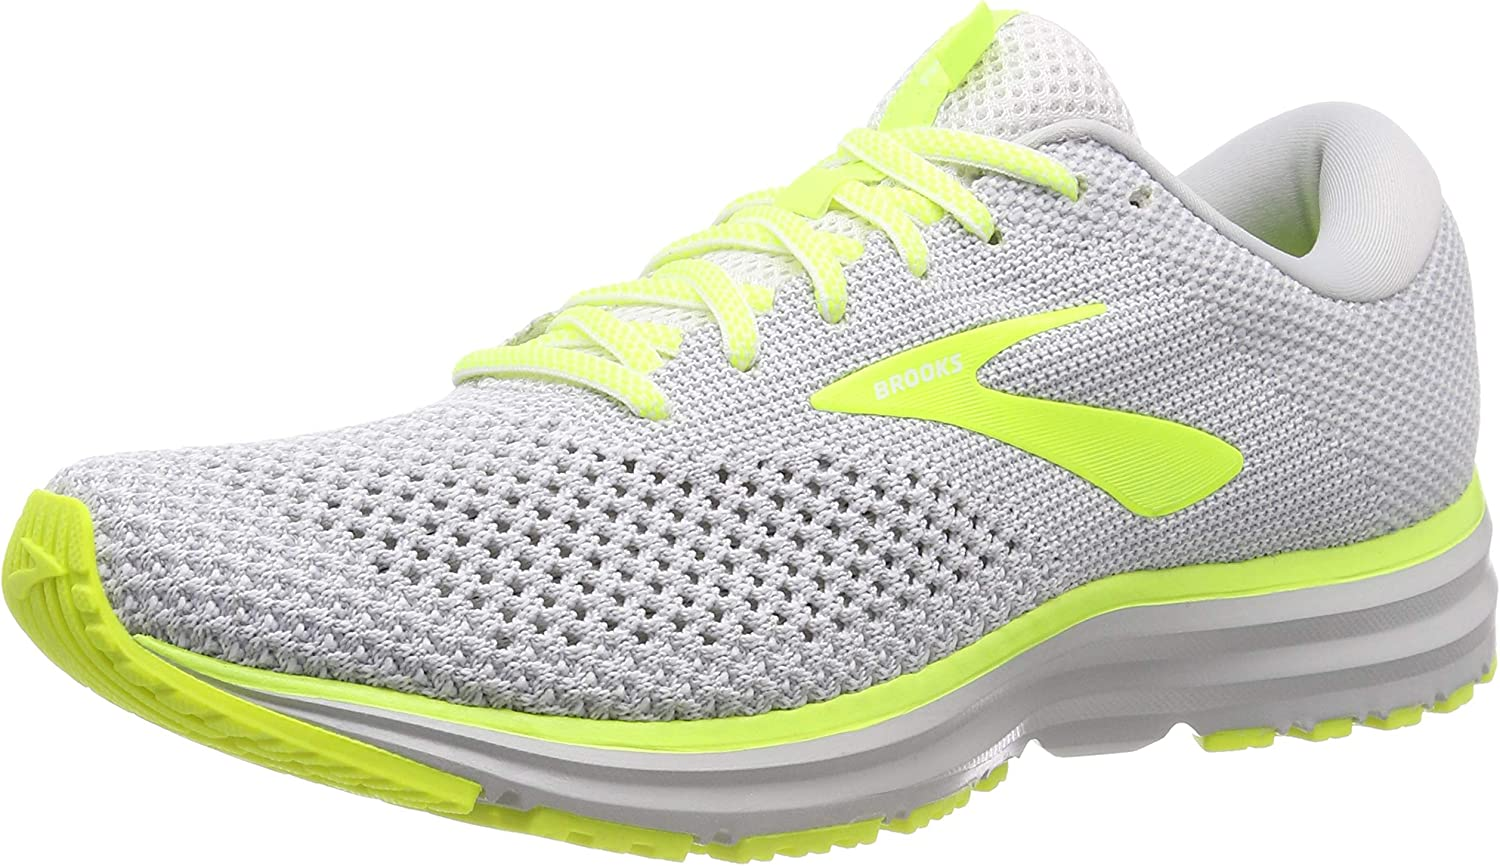 Brooks Revel 2, Zapatillas de Running para Hombre: Amazon.es: Zapatos y complementos